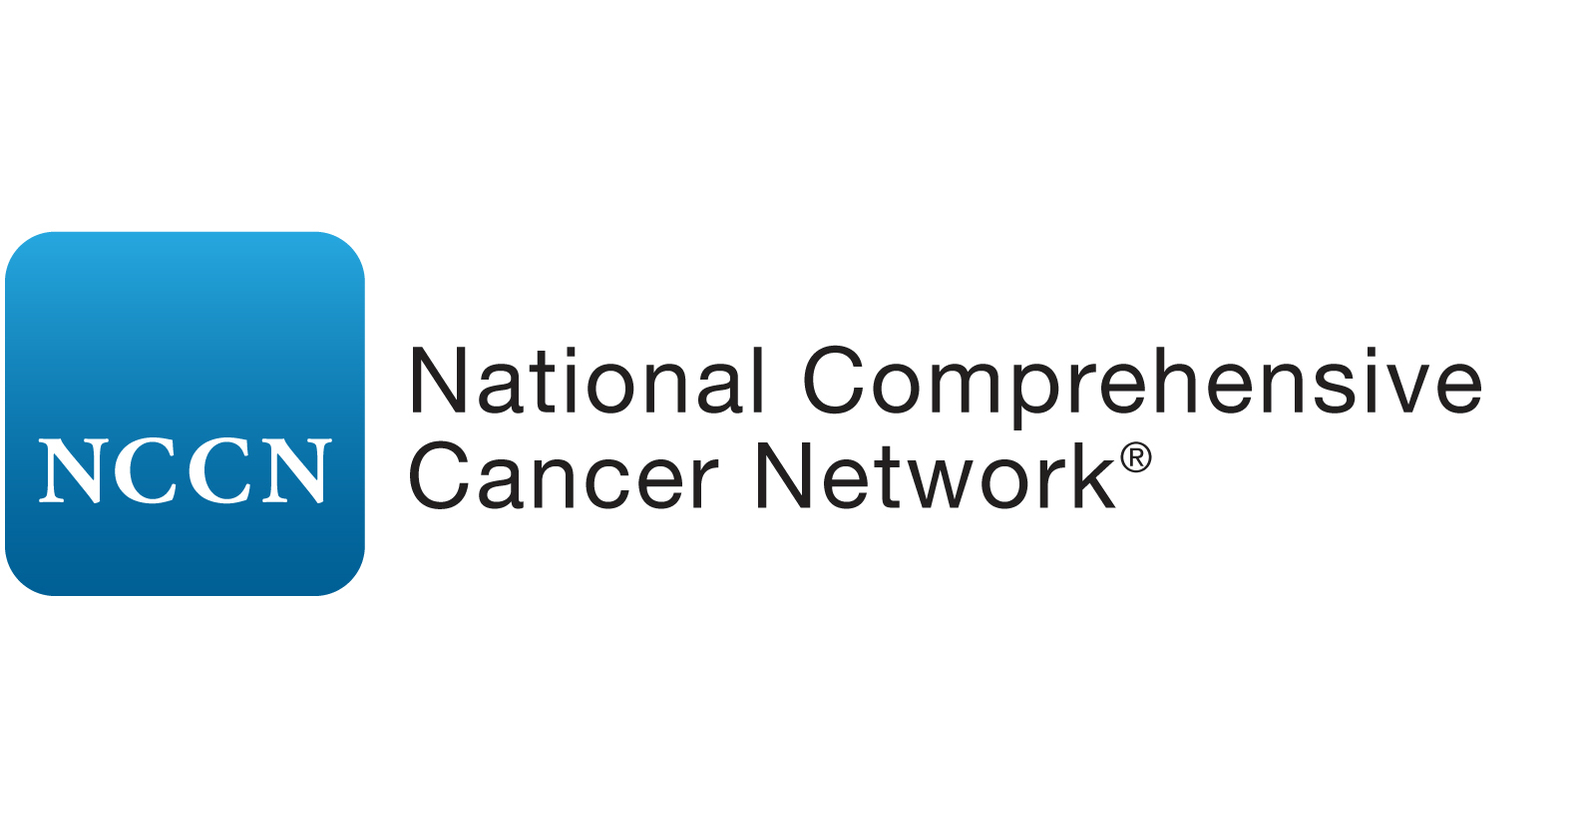 Better Doctor/Patient Communication Means Better Outcomes in Cancer Care, According to a Report in JNCCN